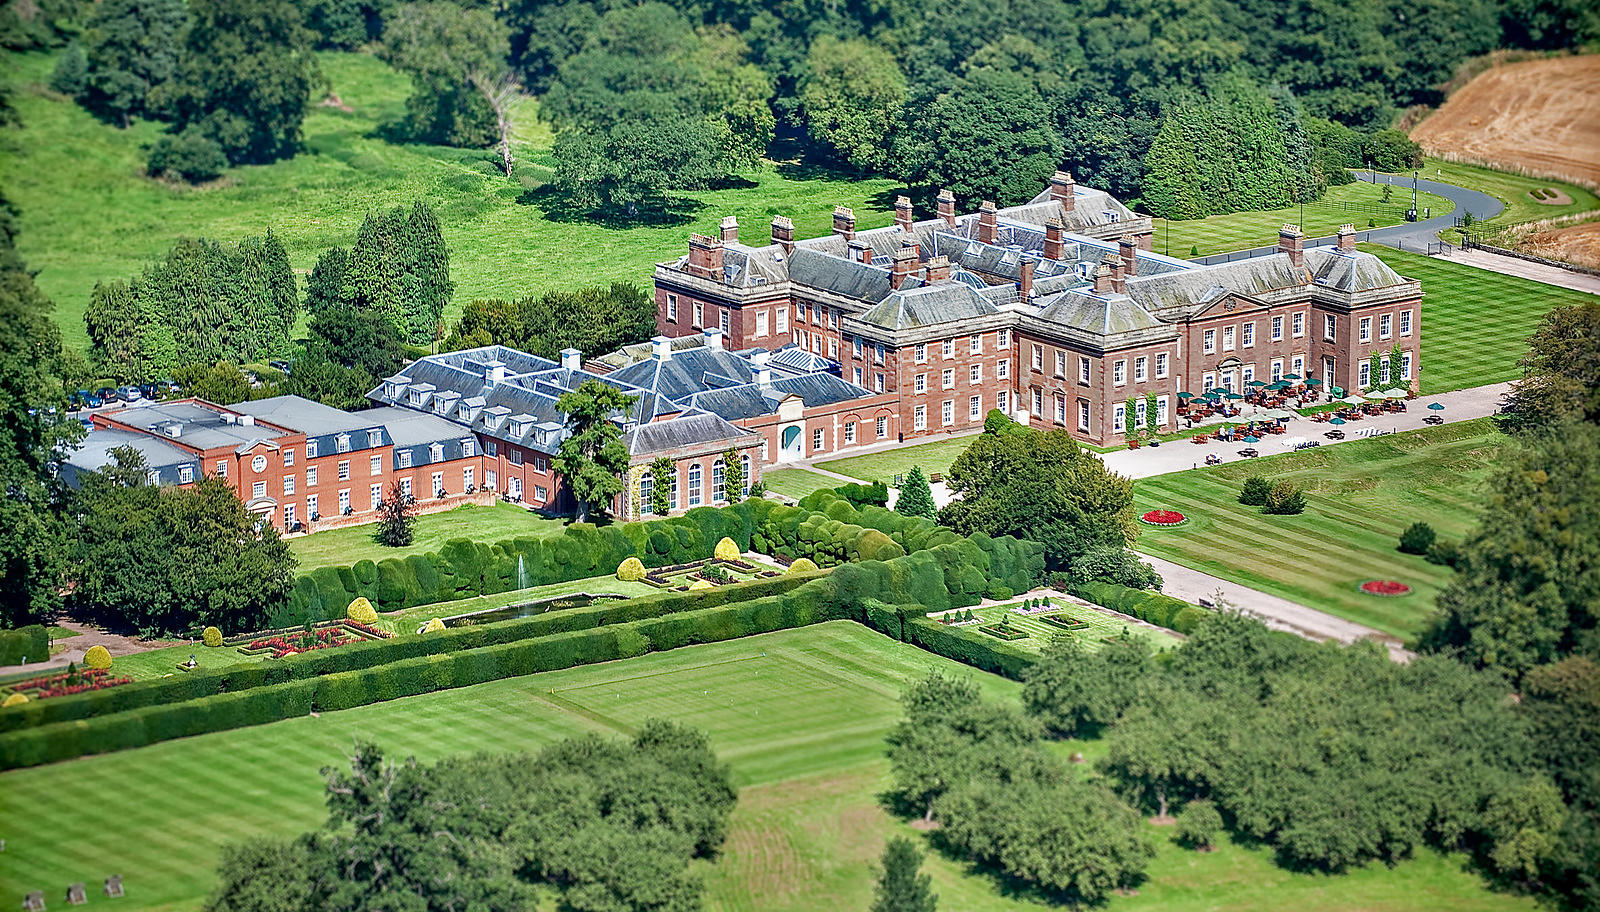 Areial View of Holme Lacy Country Hotel; Herefordshire